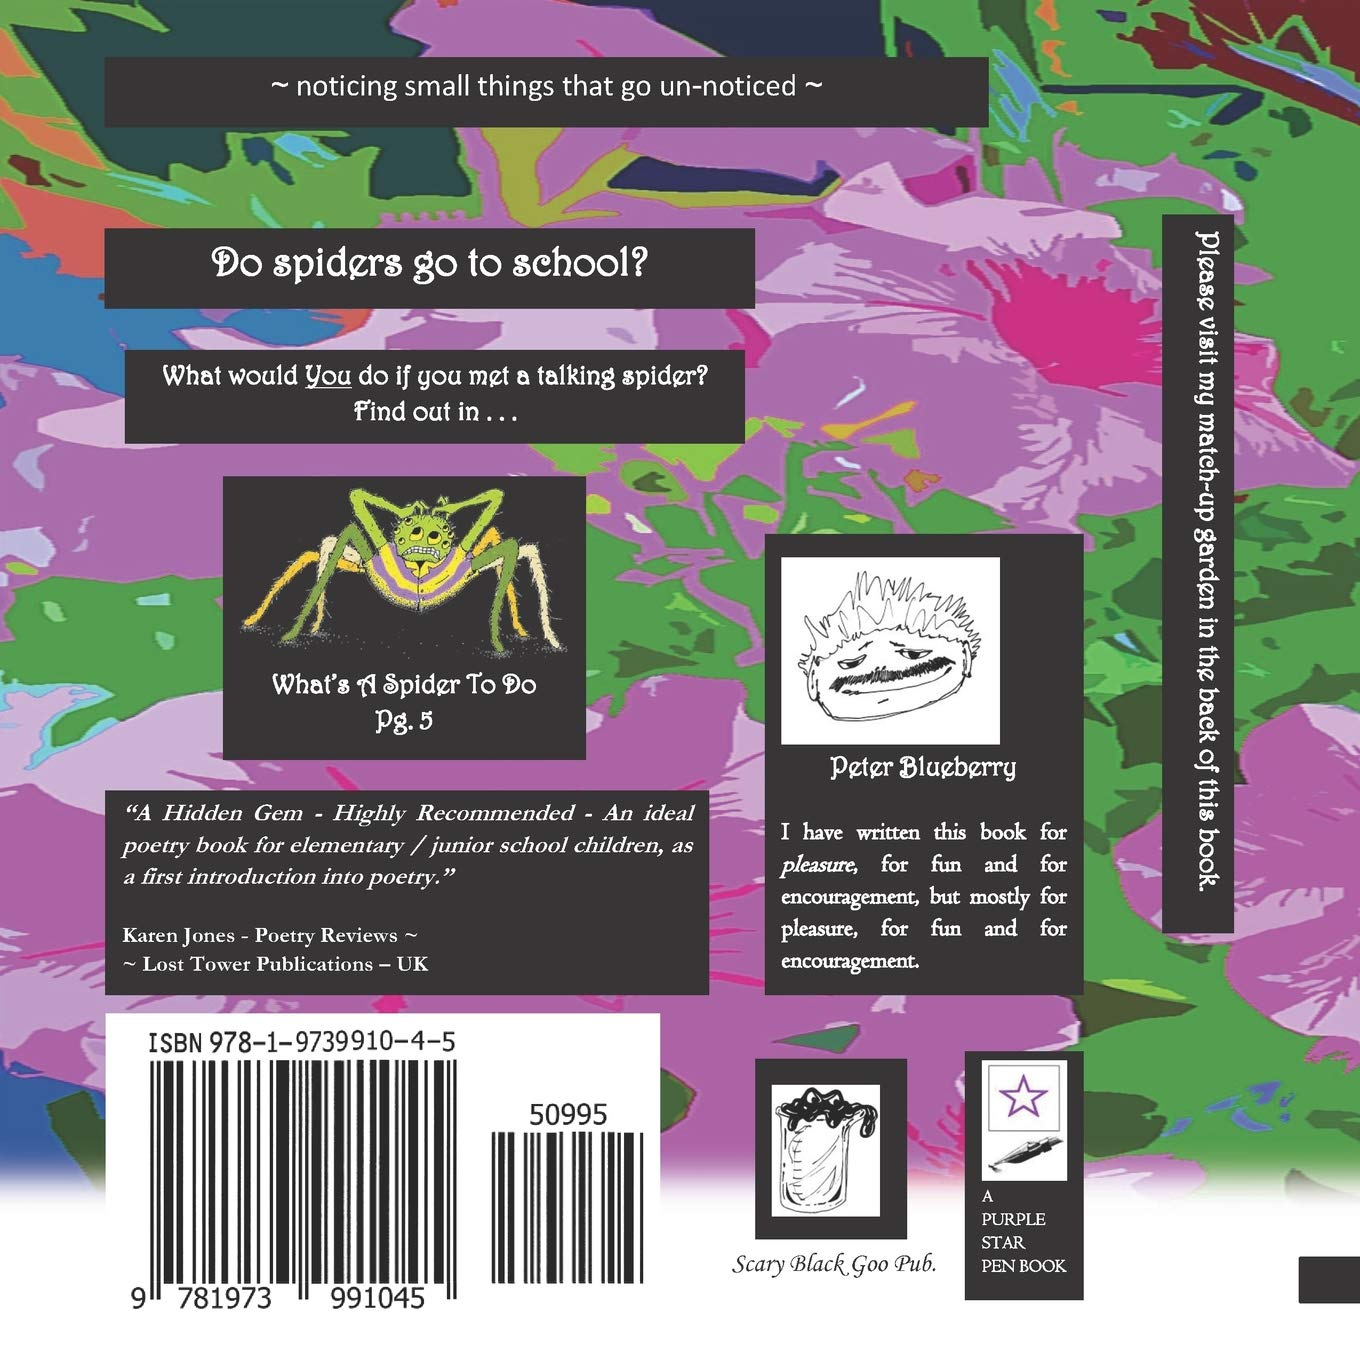 Dancing with Spiders (A Children's Poetry Book): Peter blueberry